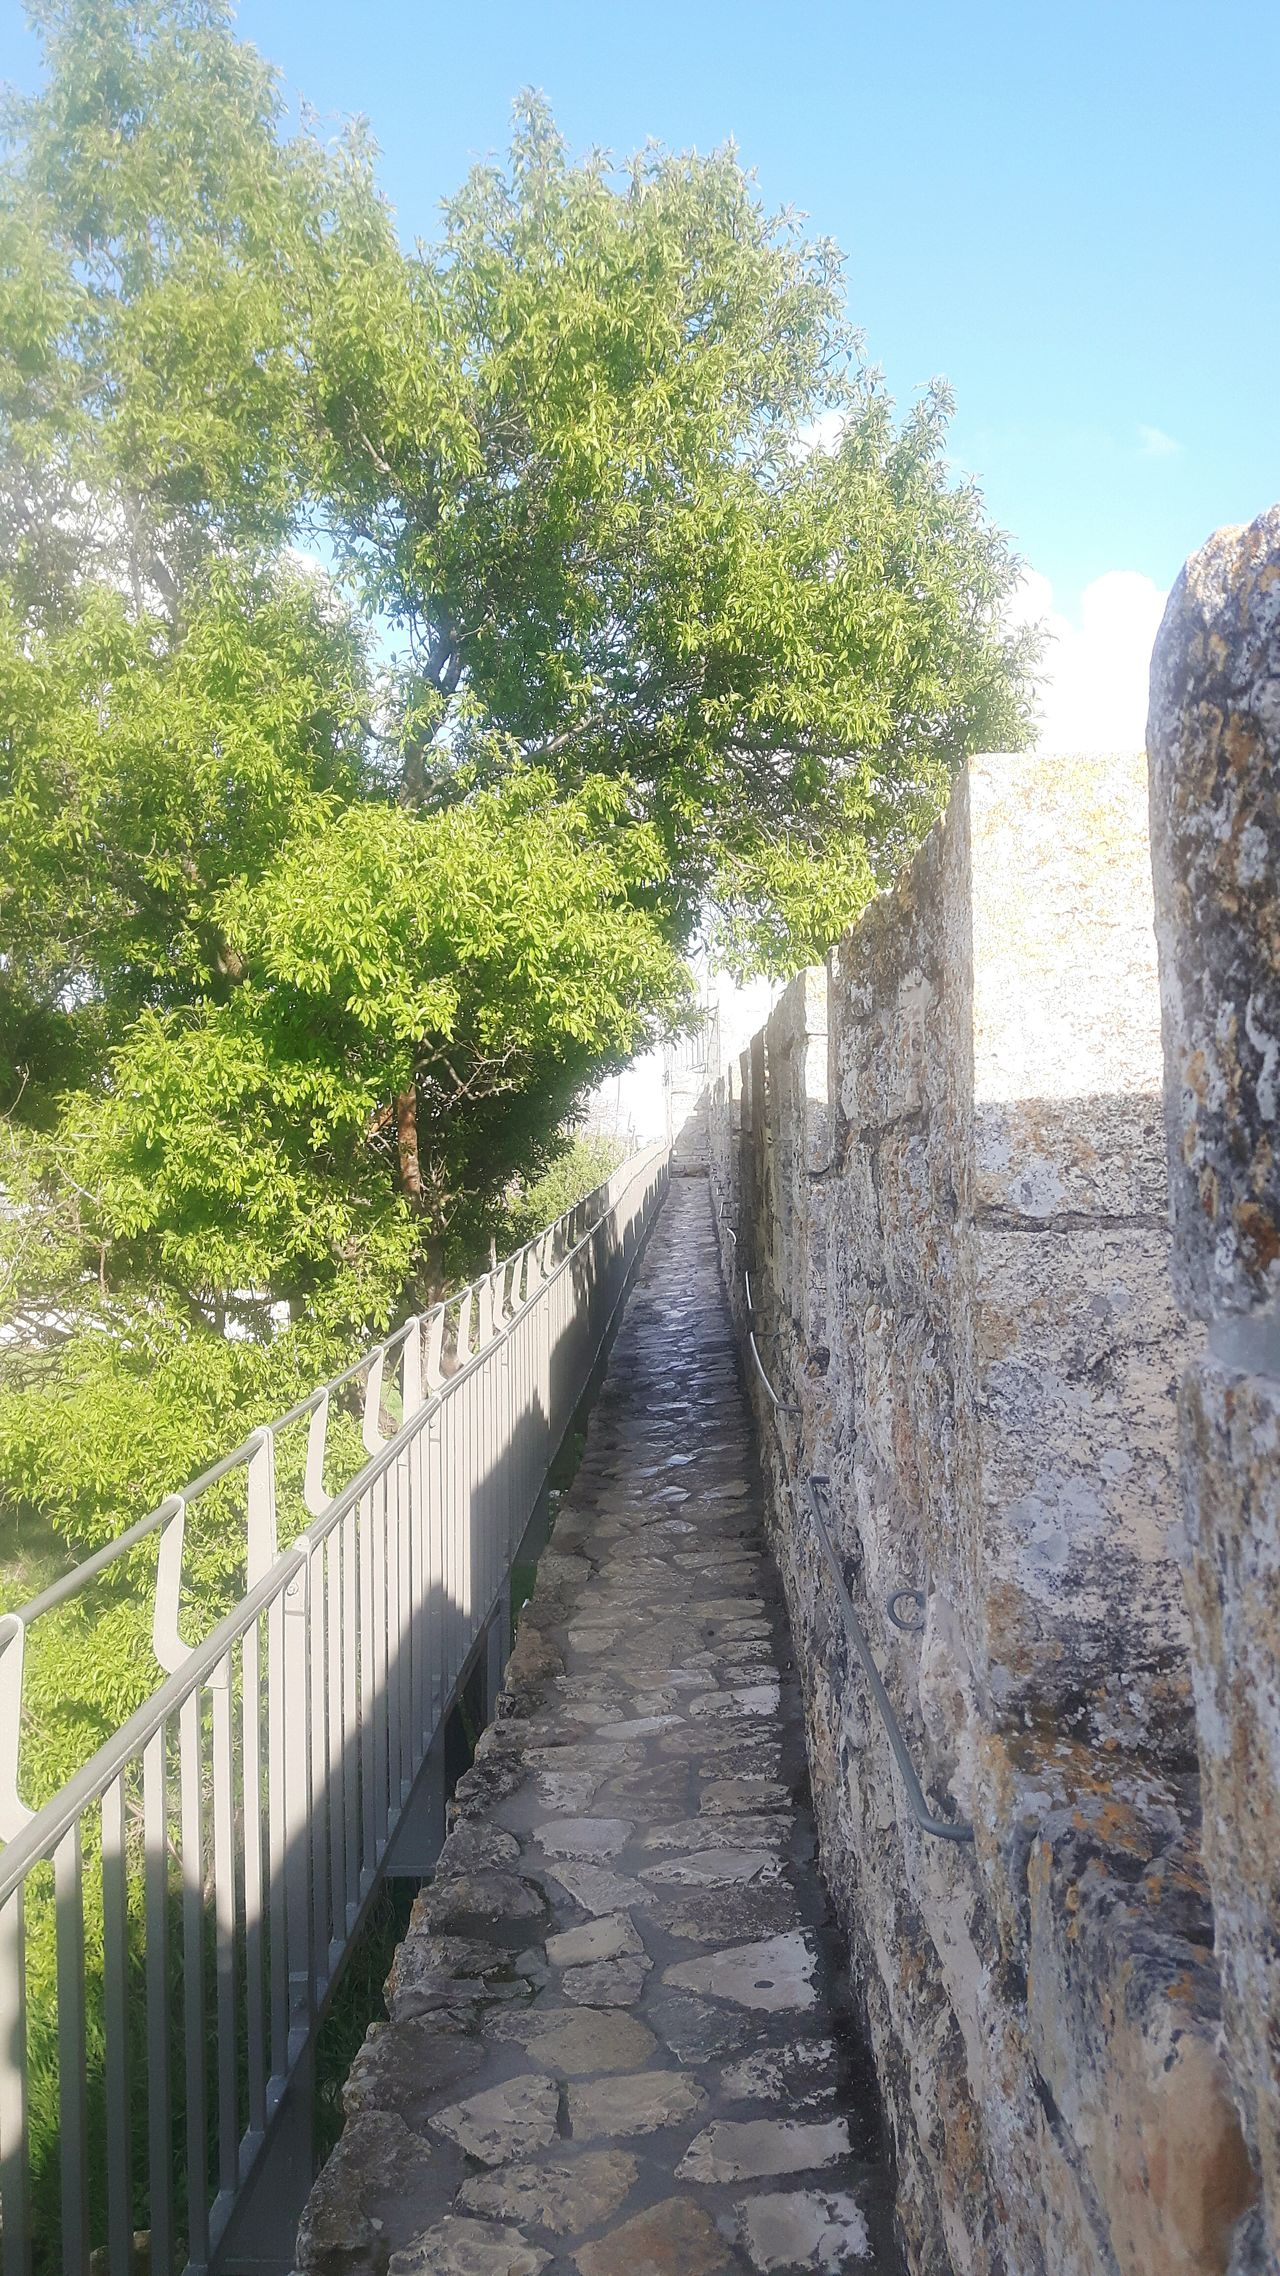 Ancient Civilization Ancient Rocks Jerusalem Rampartswalk Jerusalem City Wall Ramparts Jerusalem Israel Jaffa Gate King David Tower Rampart Tourism Ramparts Walk Jerusalem Stadtmauer Above Jerusalem Stadtmauer Sightseeing Dicover Your City Tree Green Tree